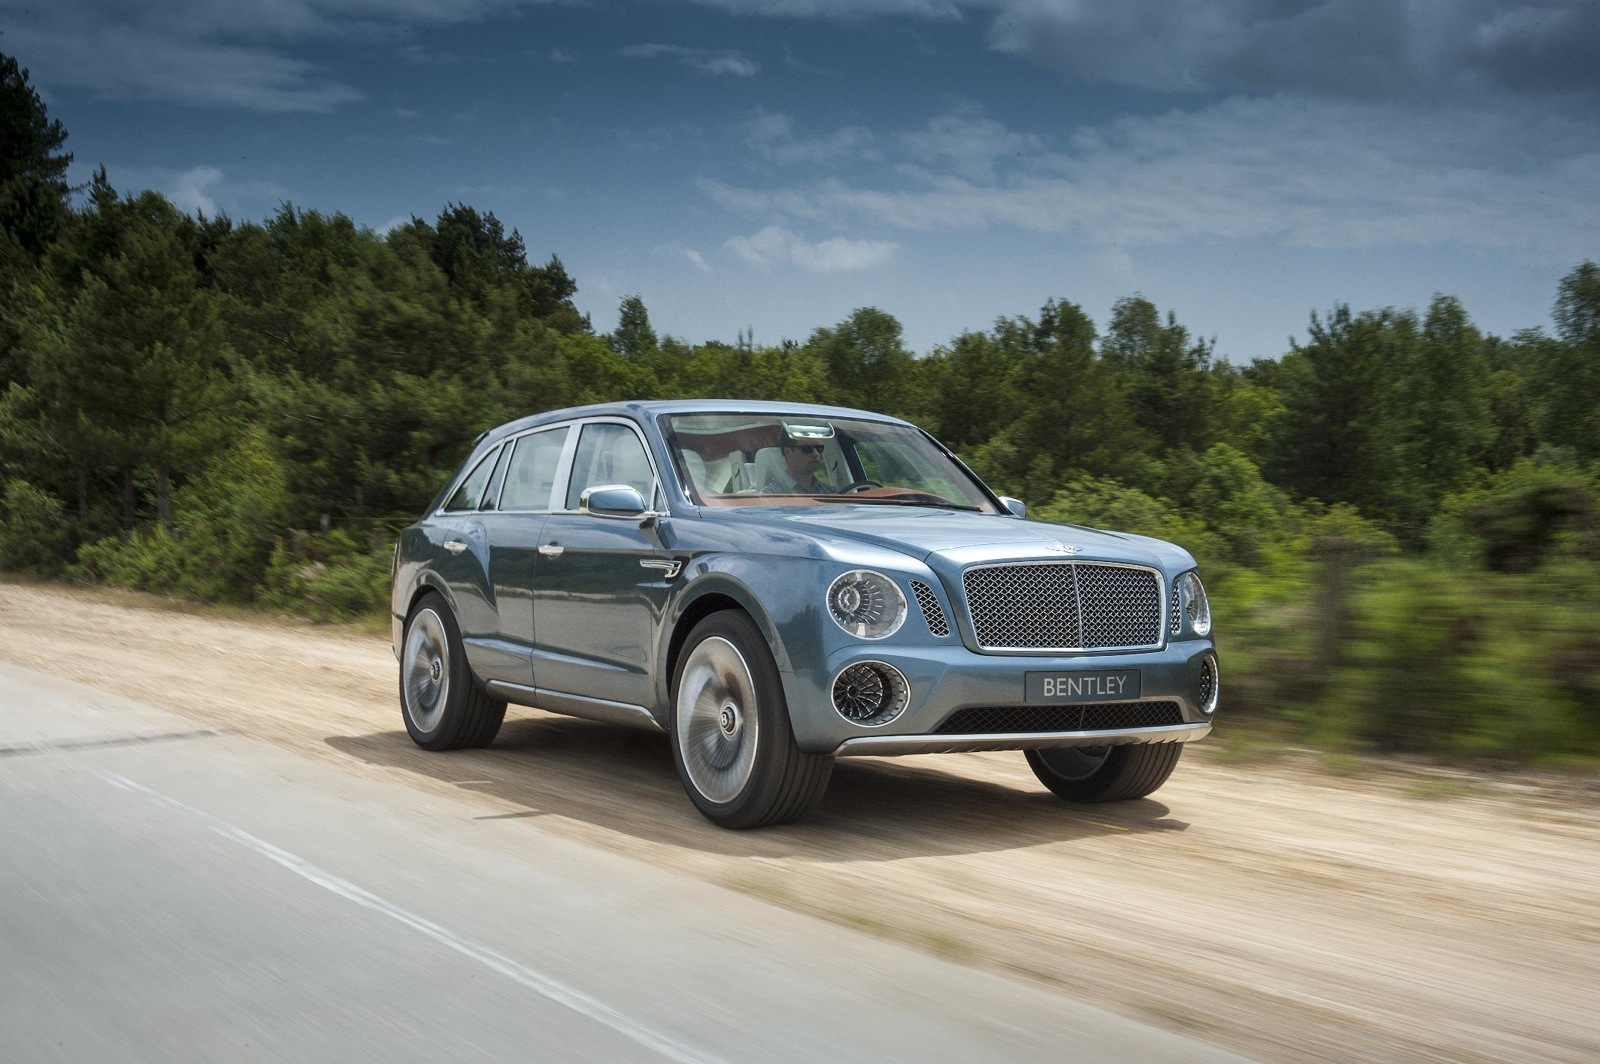 Bentley SUV: Third Row, Plug-In Hybrid, W-12 Engine Part Of Plan